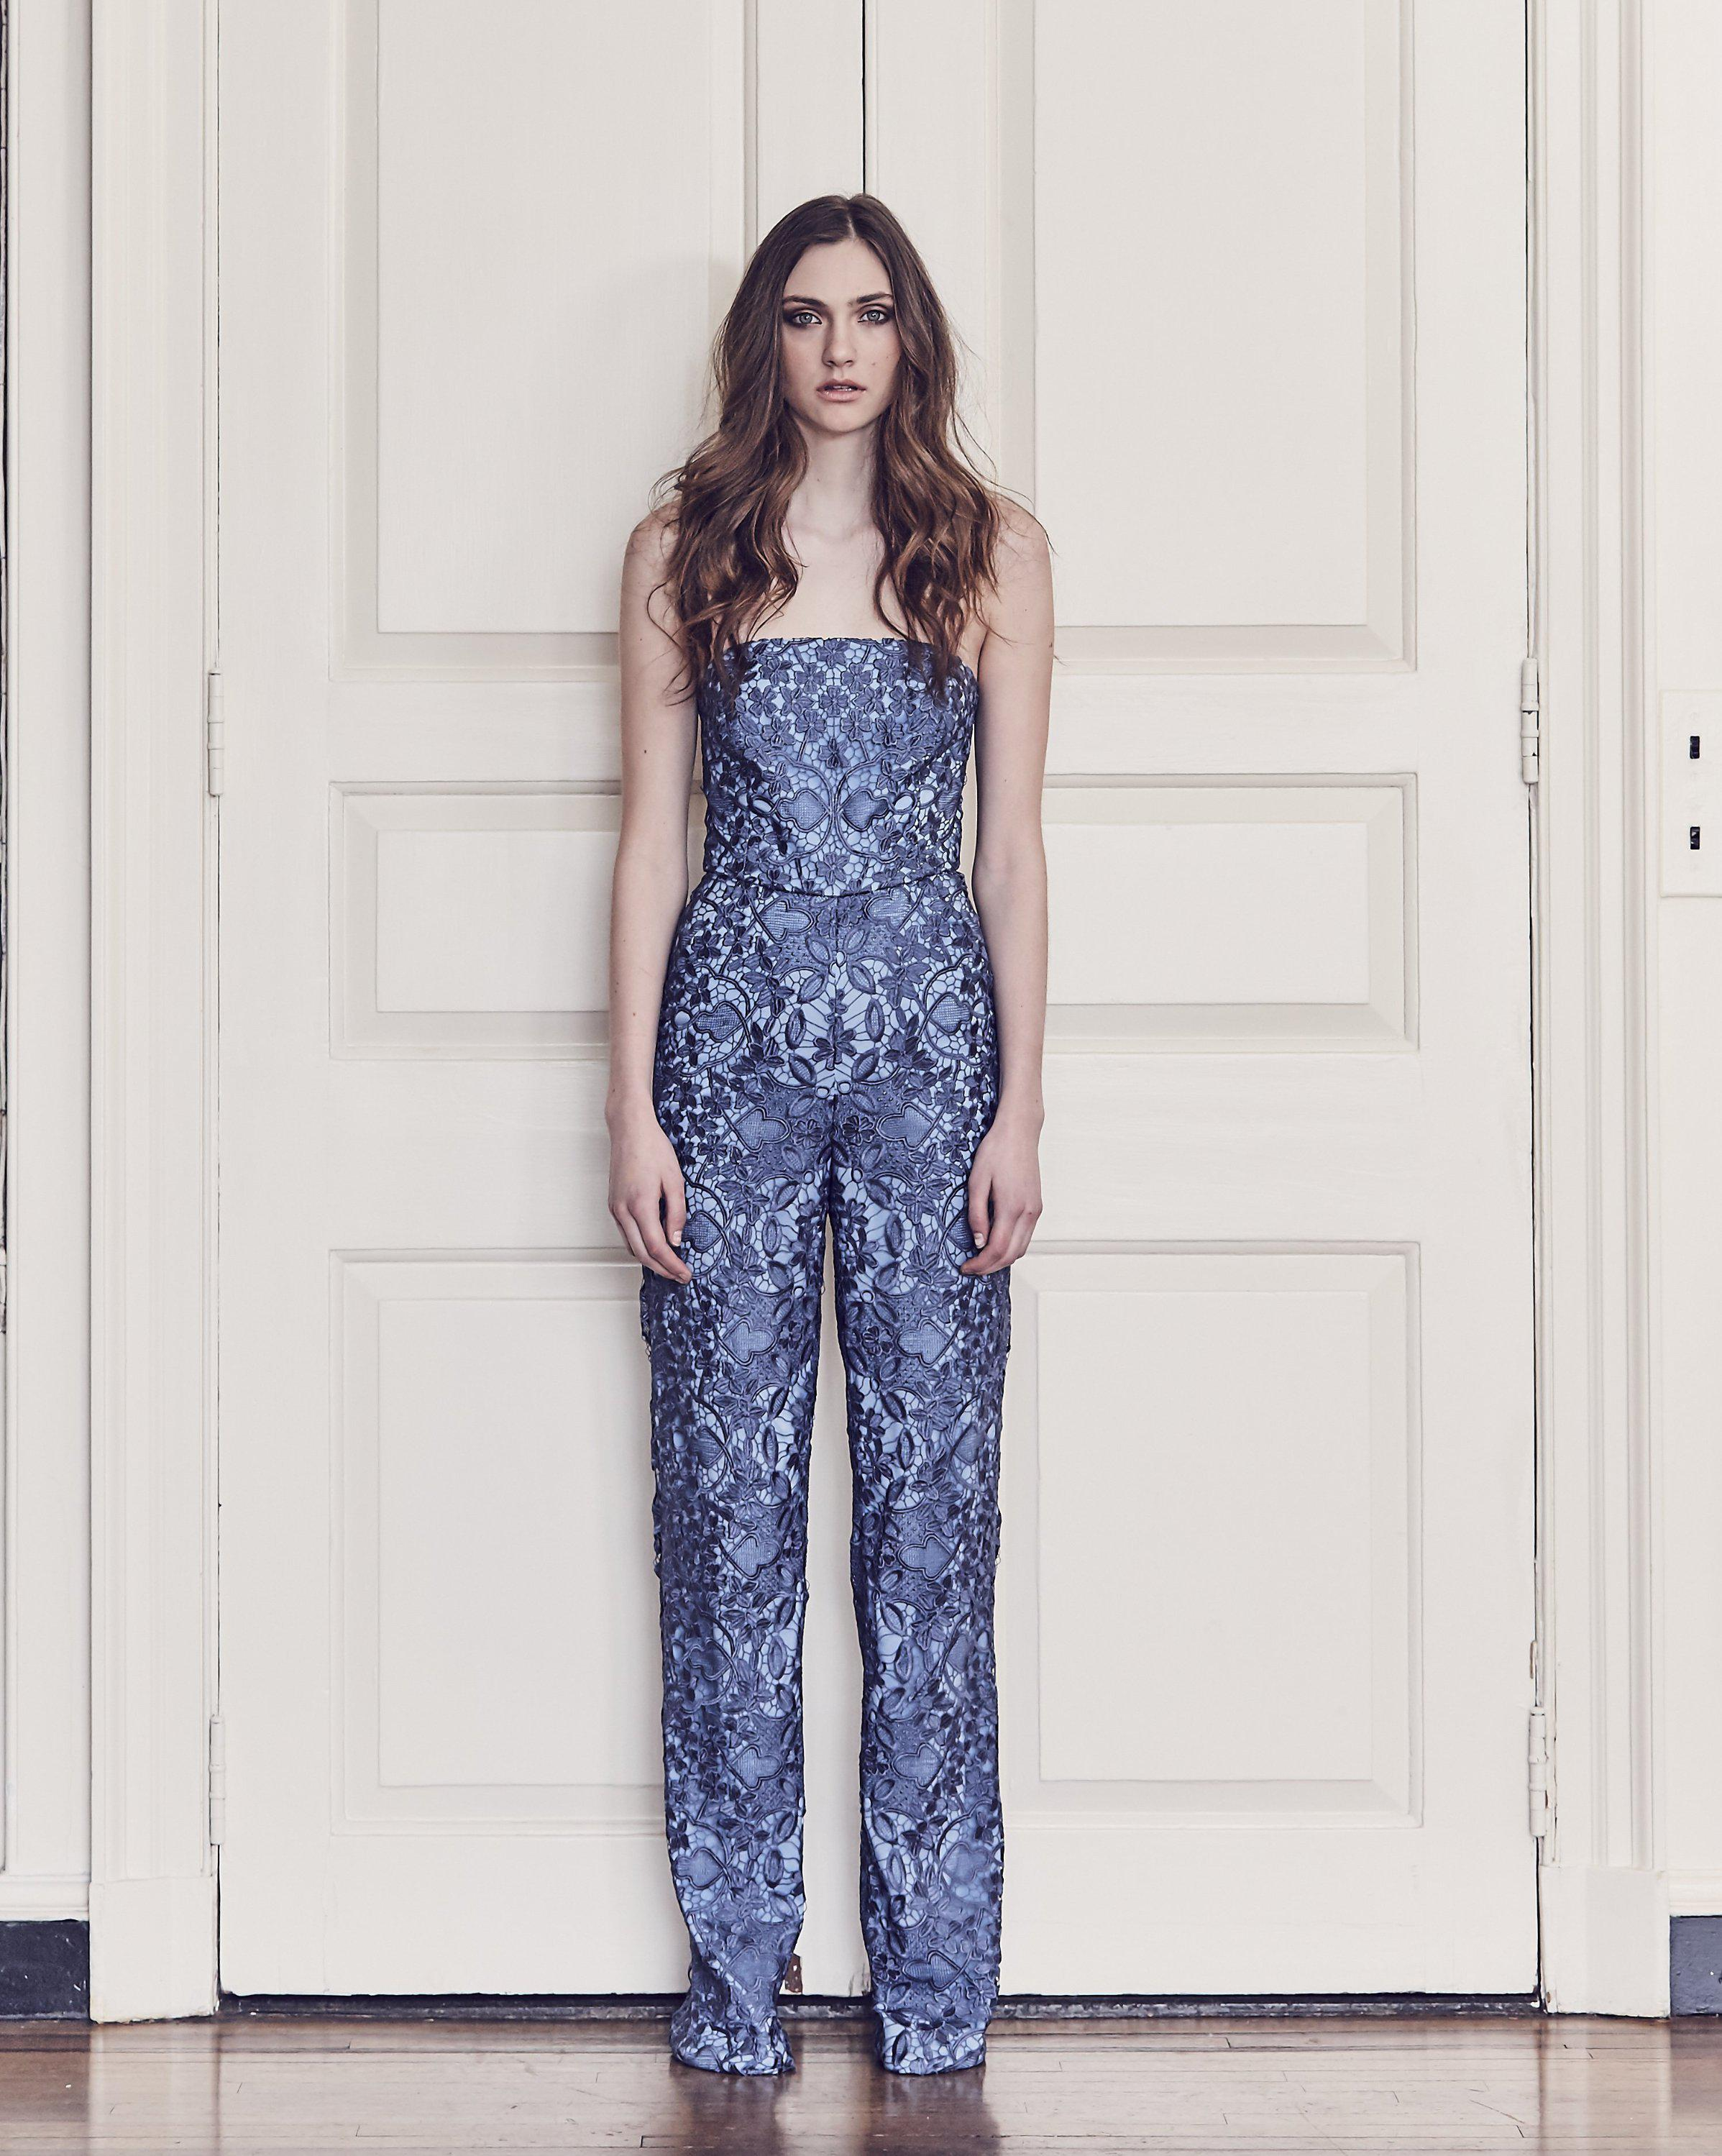 5a7891c222f Lyst - MESTIZA NEW YORK Retro Lace Strapless Jumpsuit in Blue